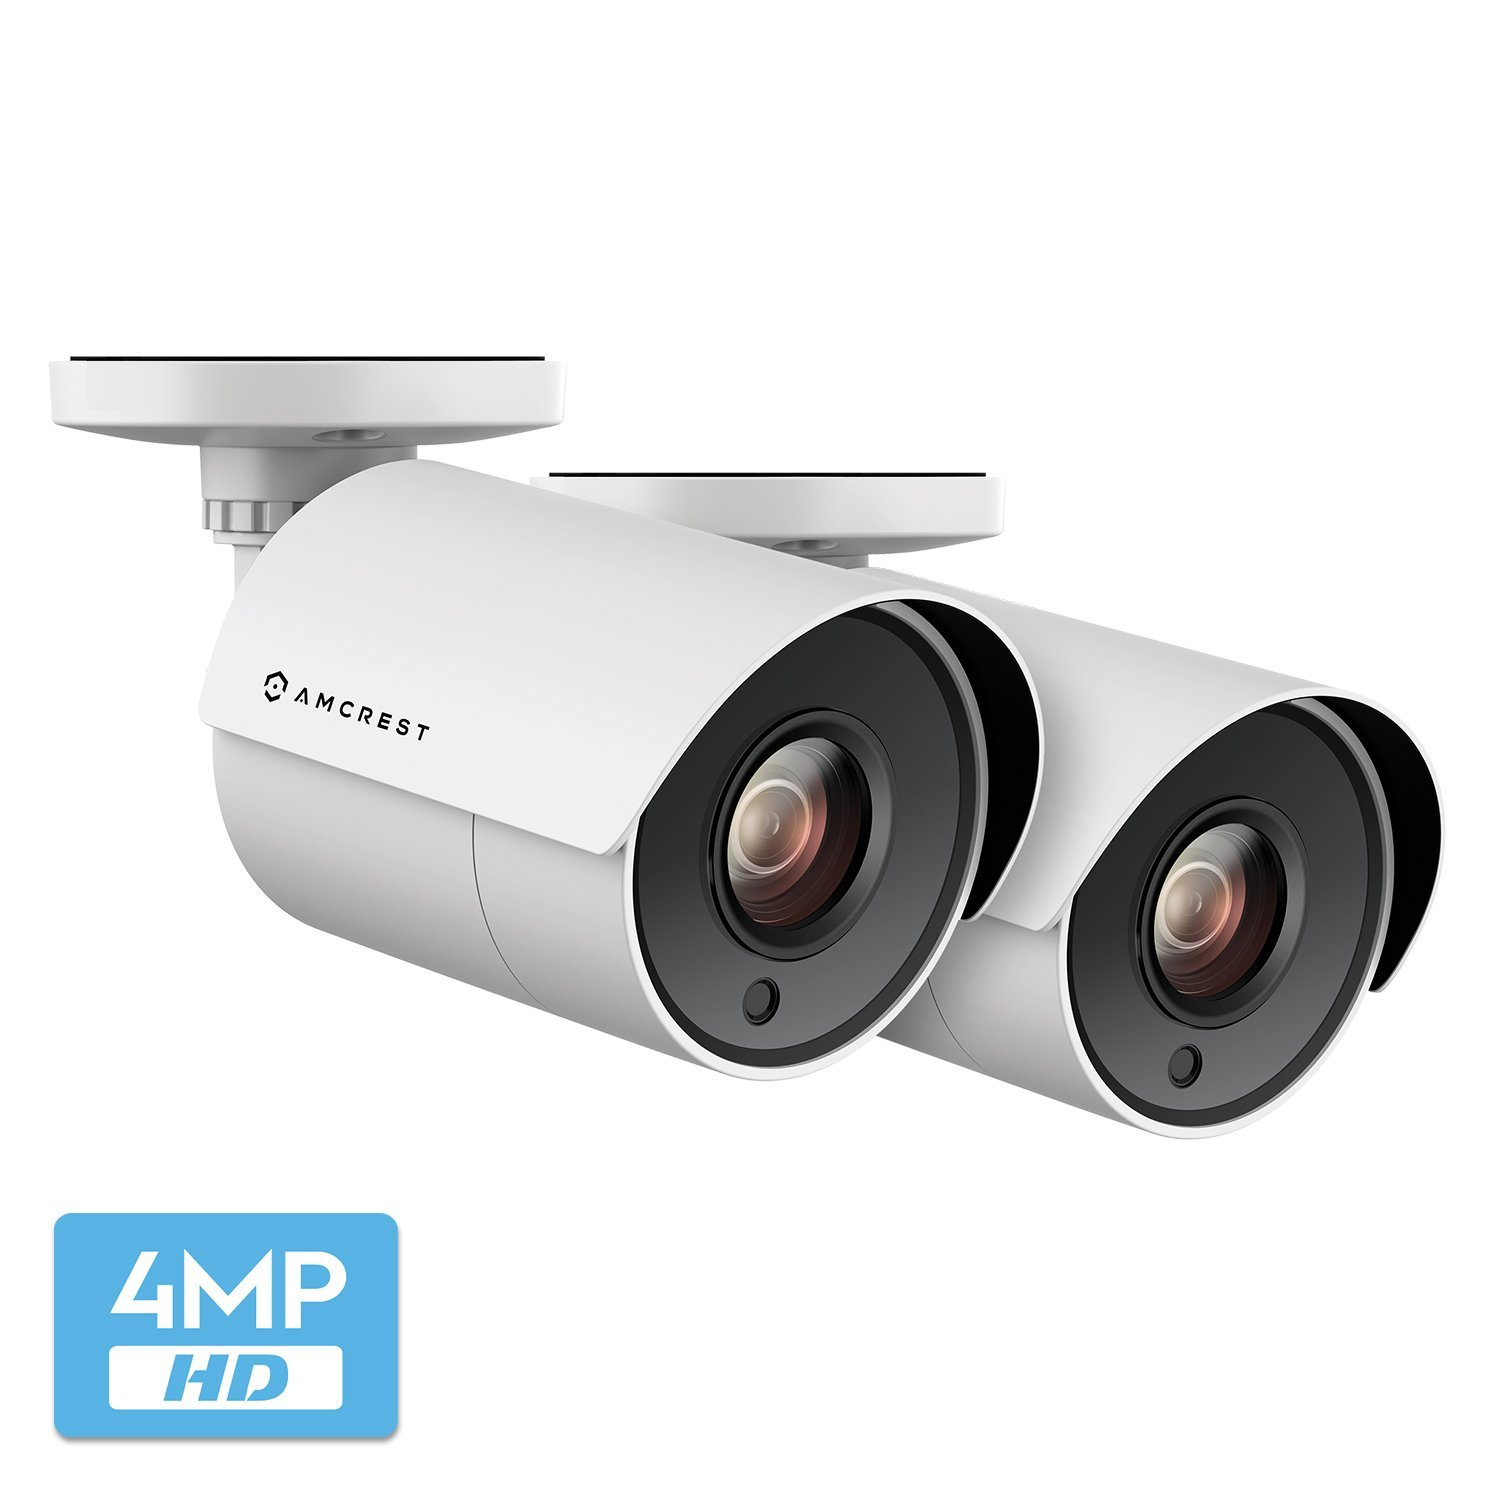 2-Pack Amcrest UltraHD 4-Megapixel Bullet Outdoor Security Camera, 4MP 2688x1440P, Heavy Duty Housing, 2.8mm Lens 100° Wide Angle, White (2PACK-AMC4MBC28P-W)